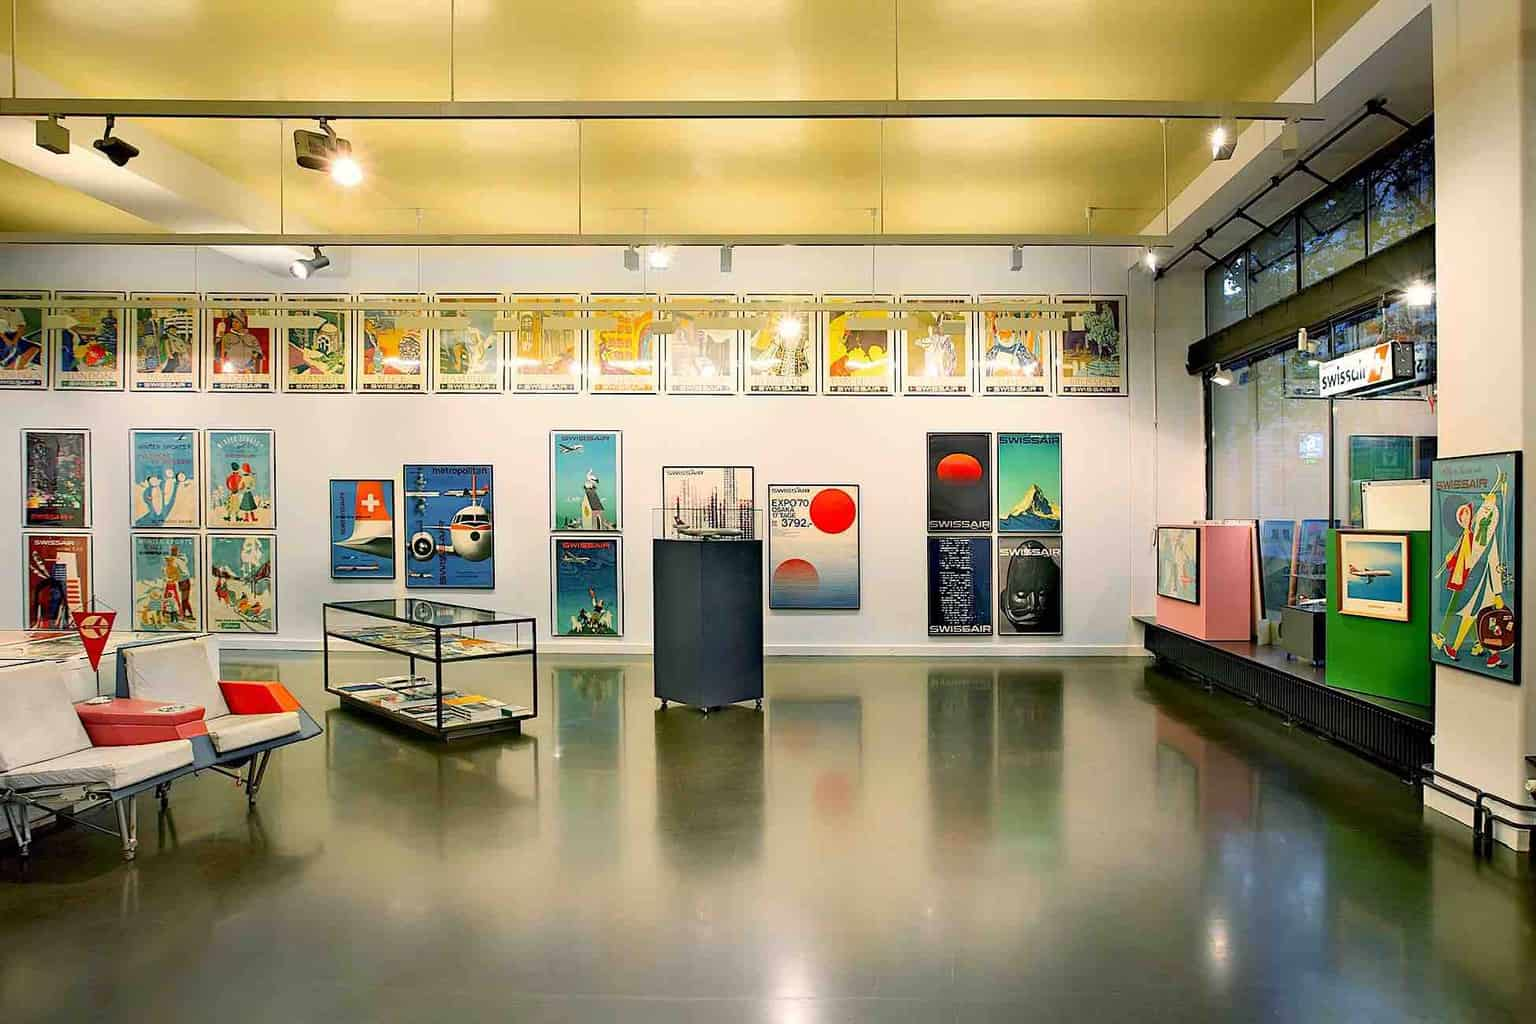 SKY SOCIETY exhibition of Swissair posters Zurich